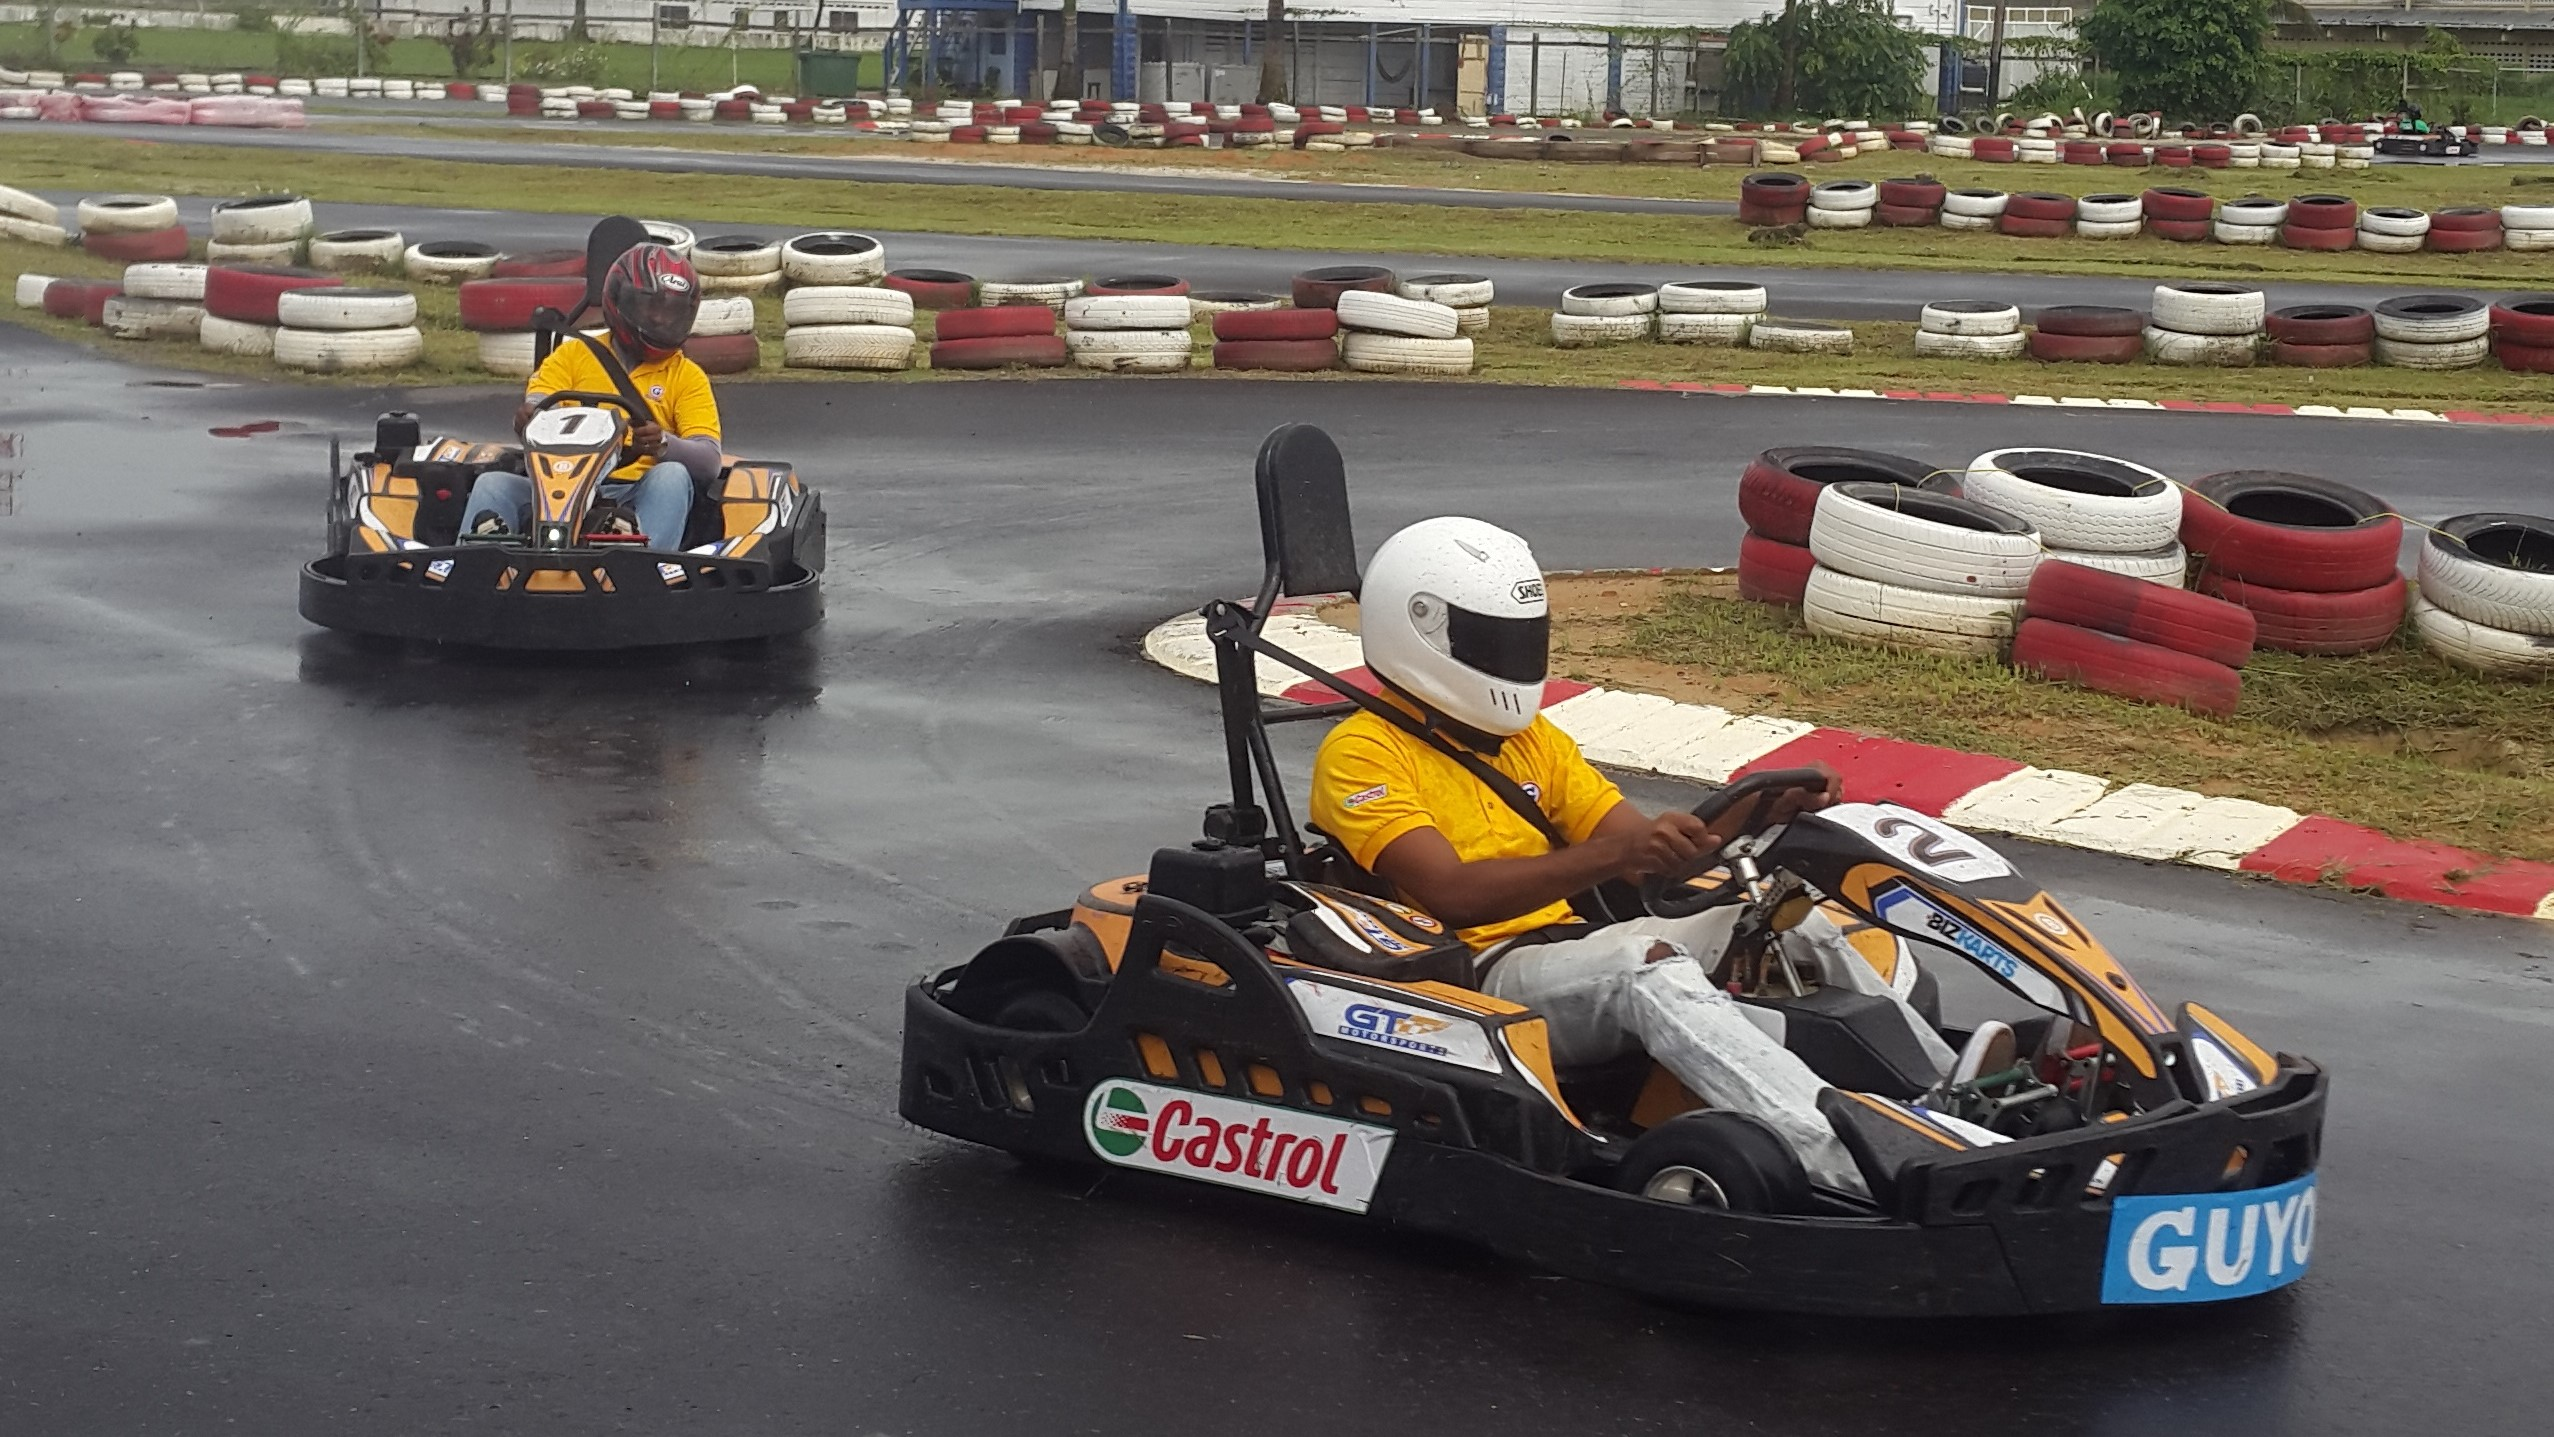 guyana kart UG's 'Race for Pace' meets $4M target with Go kart event – News  guyana kart